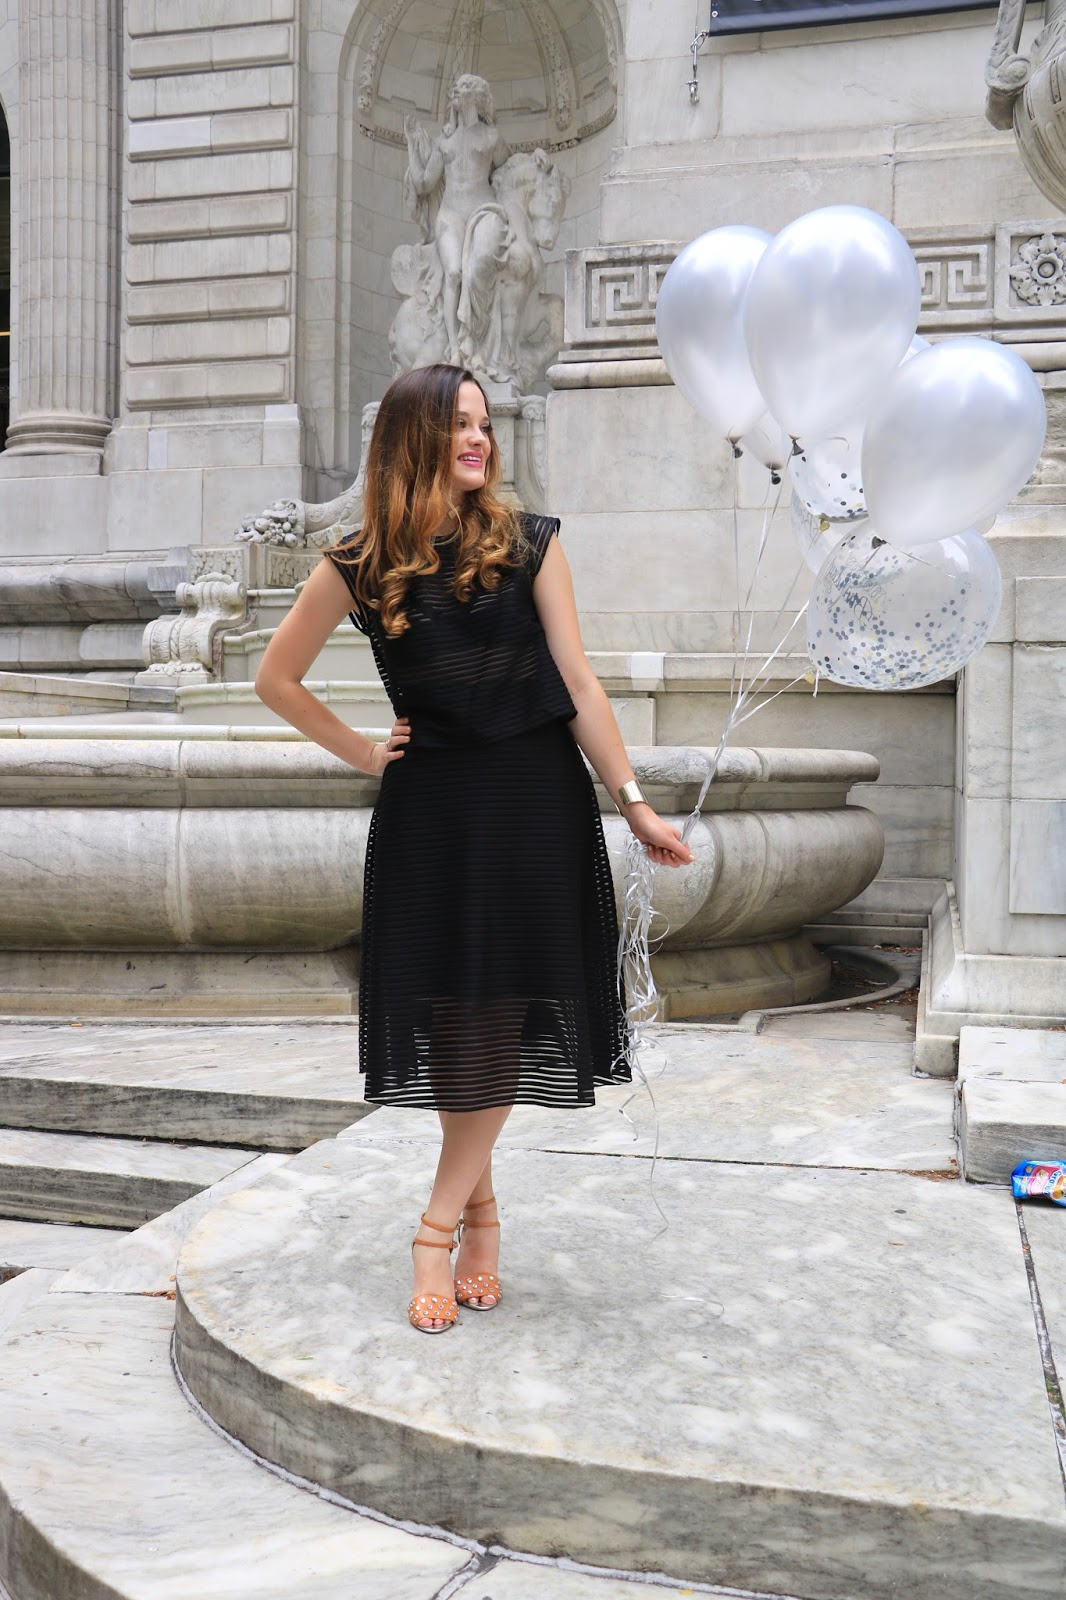 NYC fashion blogger Kat's Fashion Fix wearing an all-black party outfit